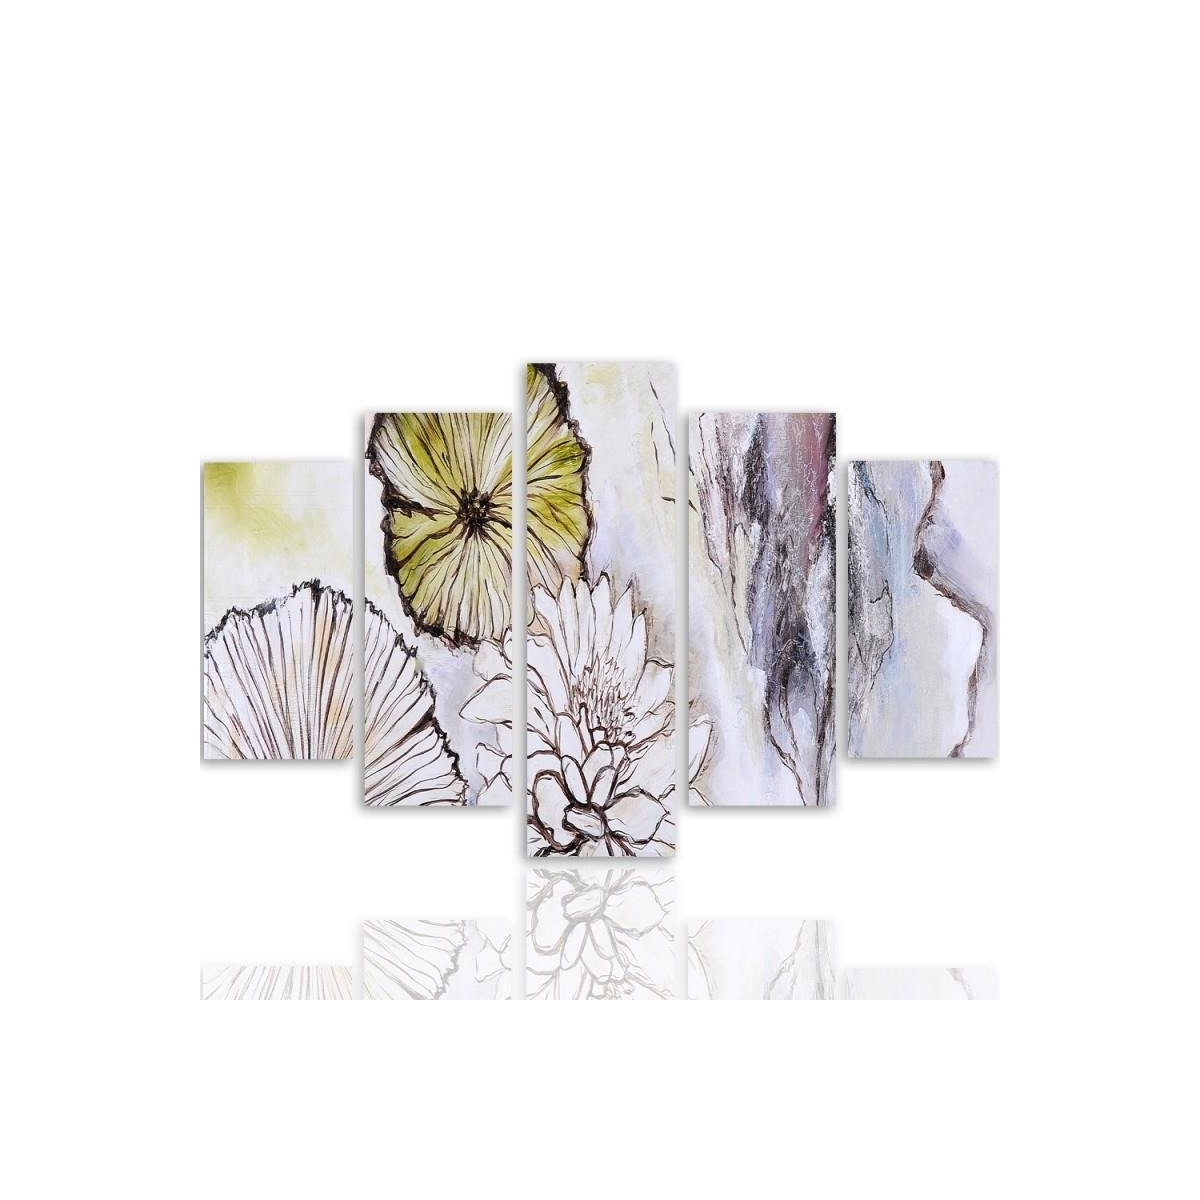 Five Part Picture On Canvas, Pentaptych, Type A, Flowers - Abstraction100x150